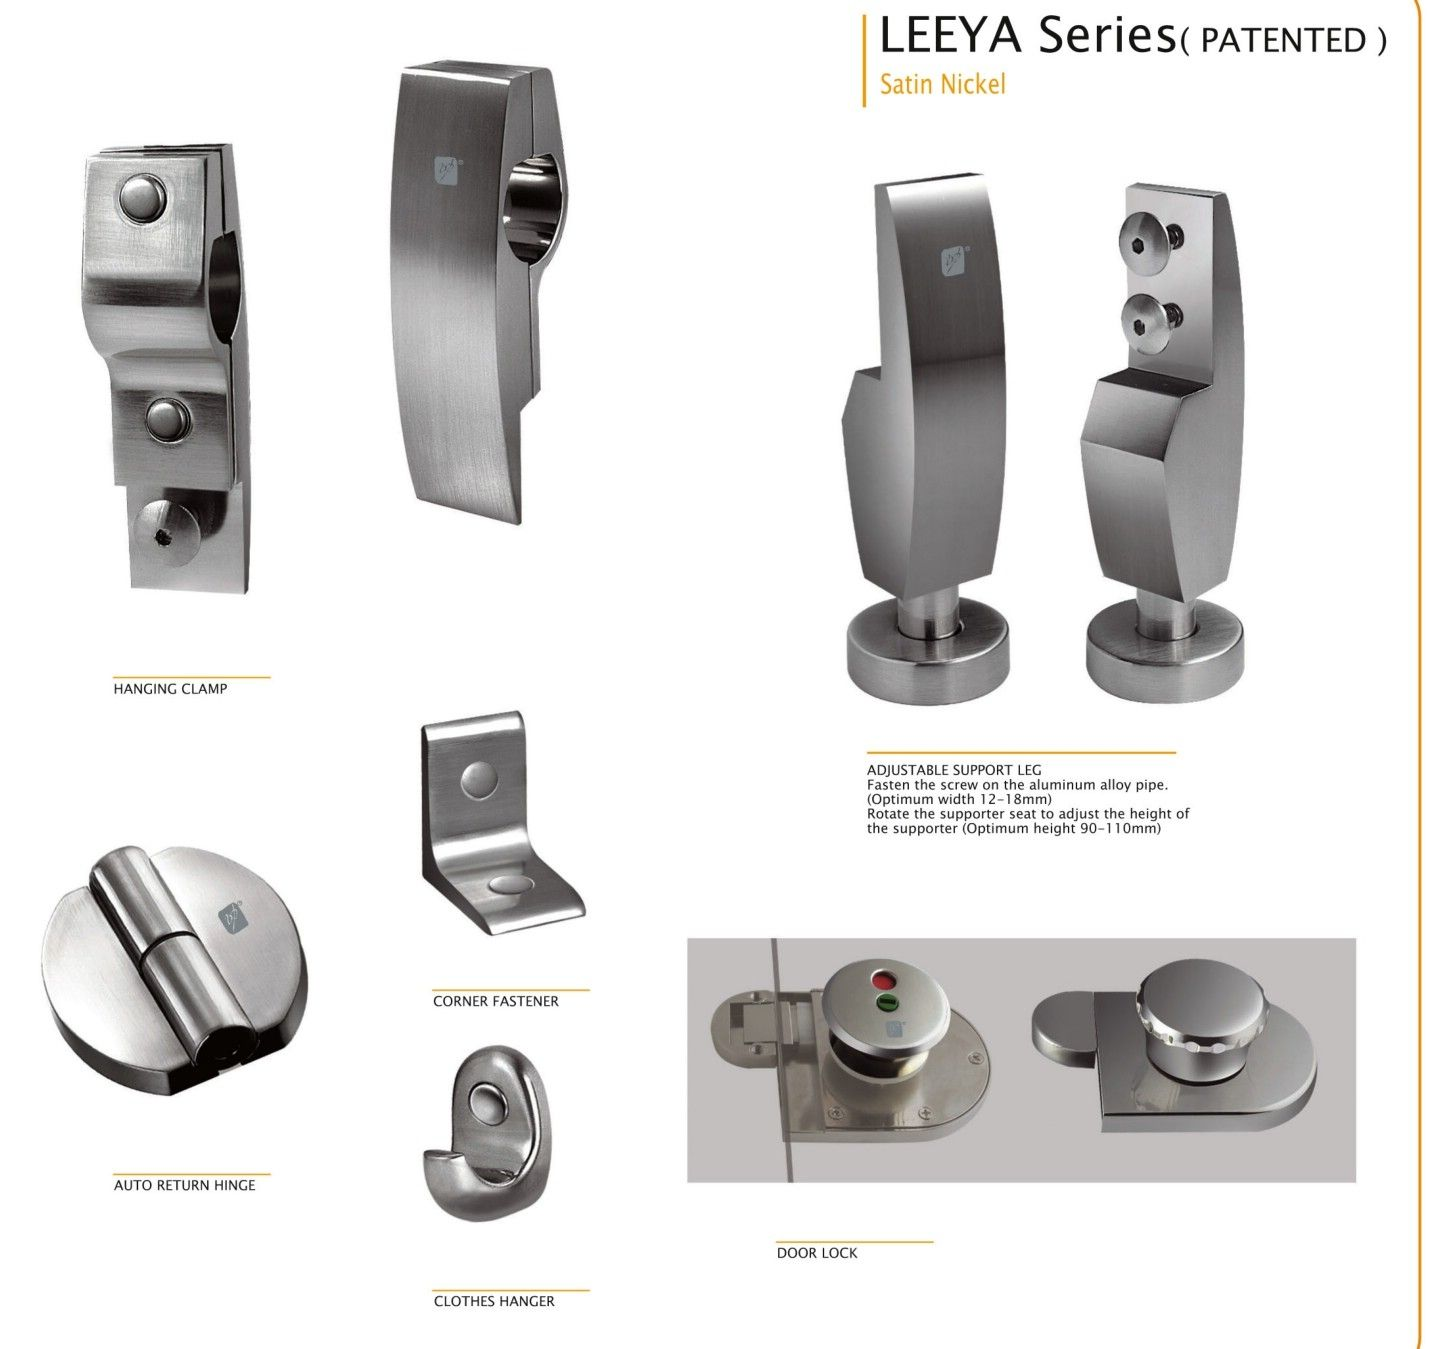 Hpl Toilet Partition Accessories Hardware Leeya Series View